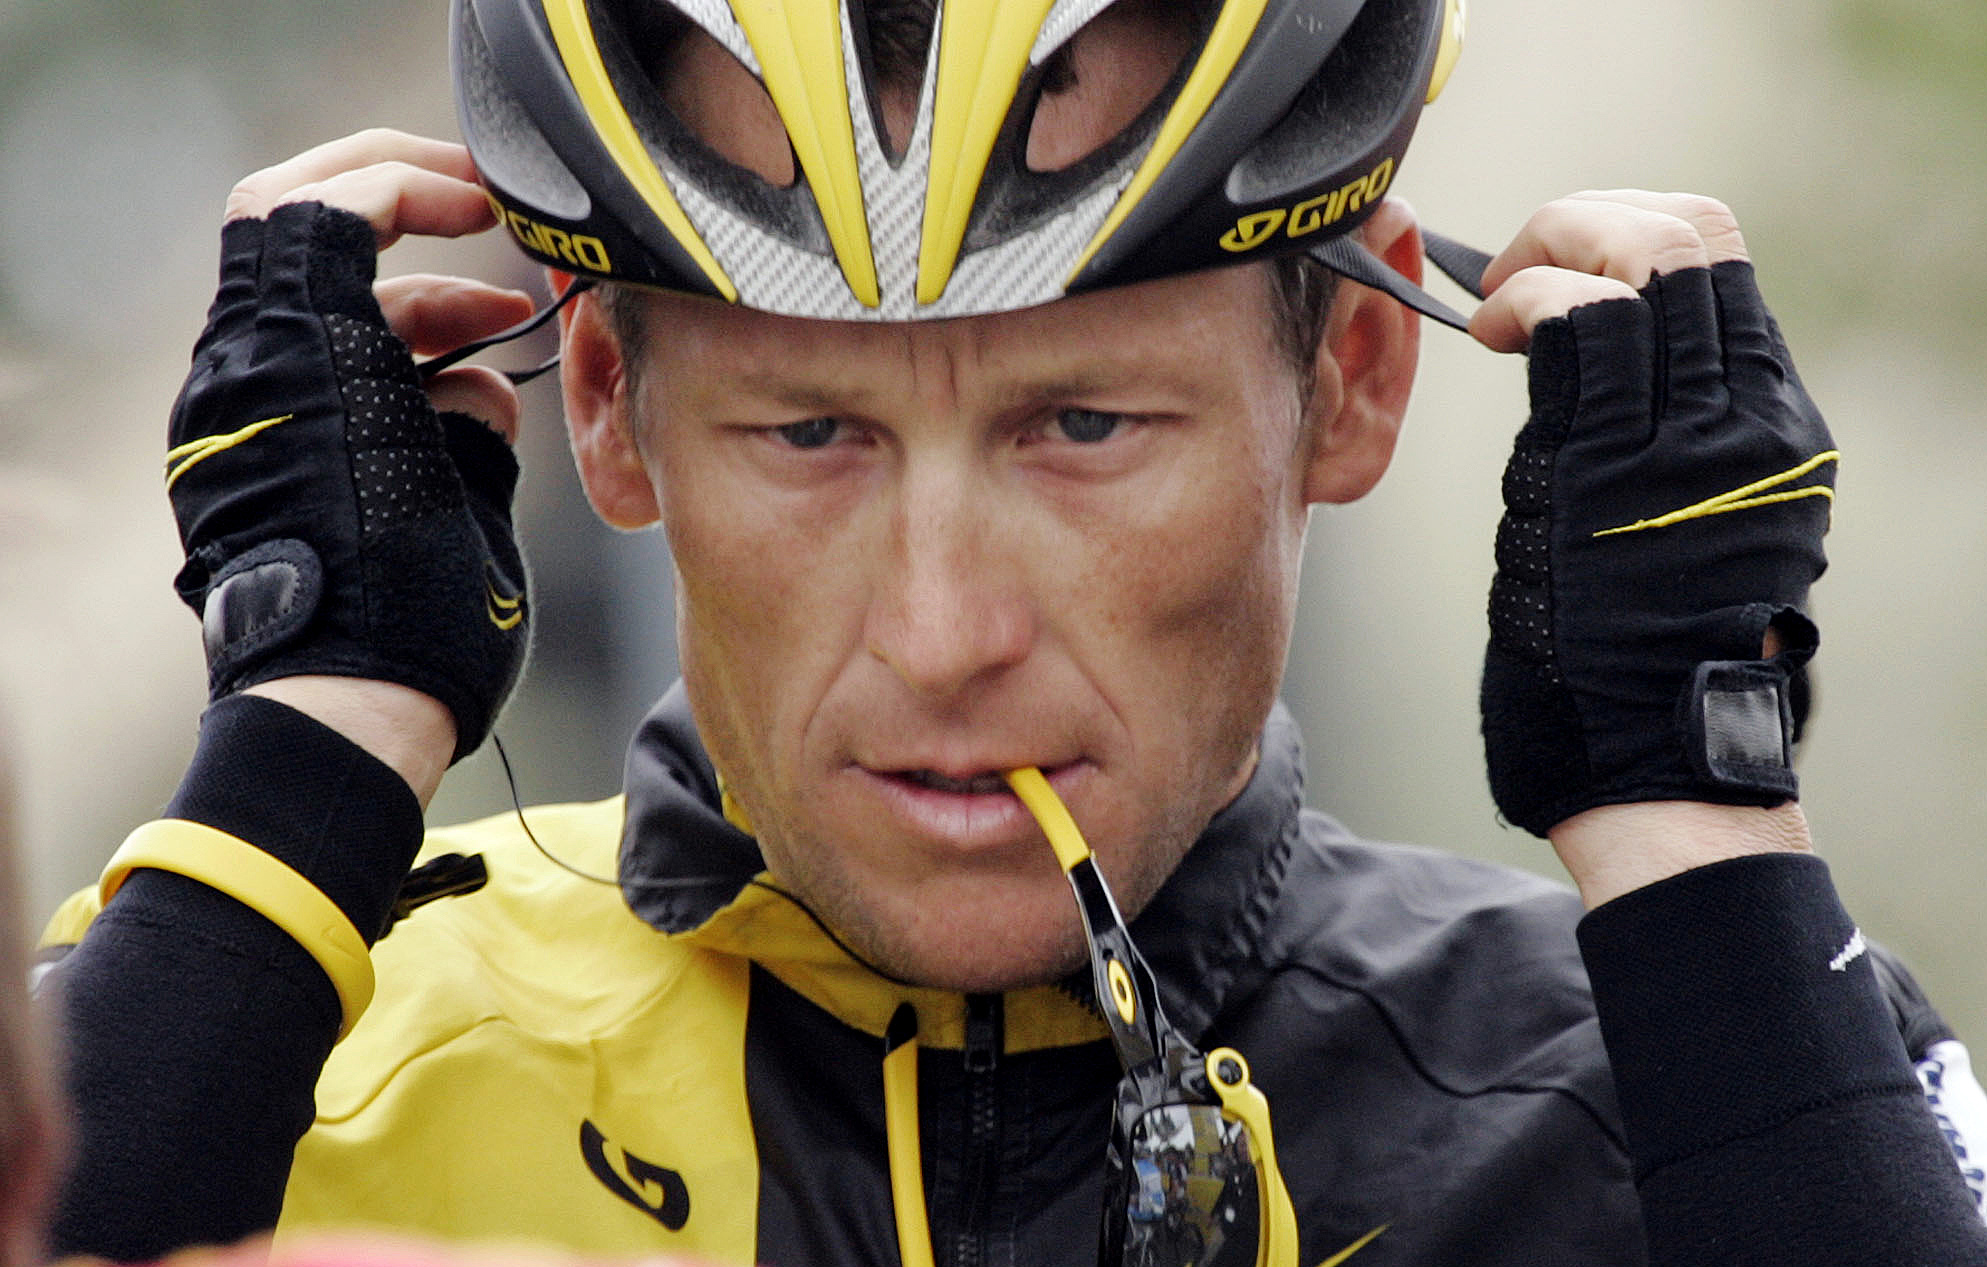 Armstrong Doping Cycling_1524170425595